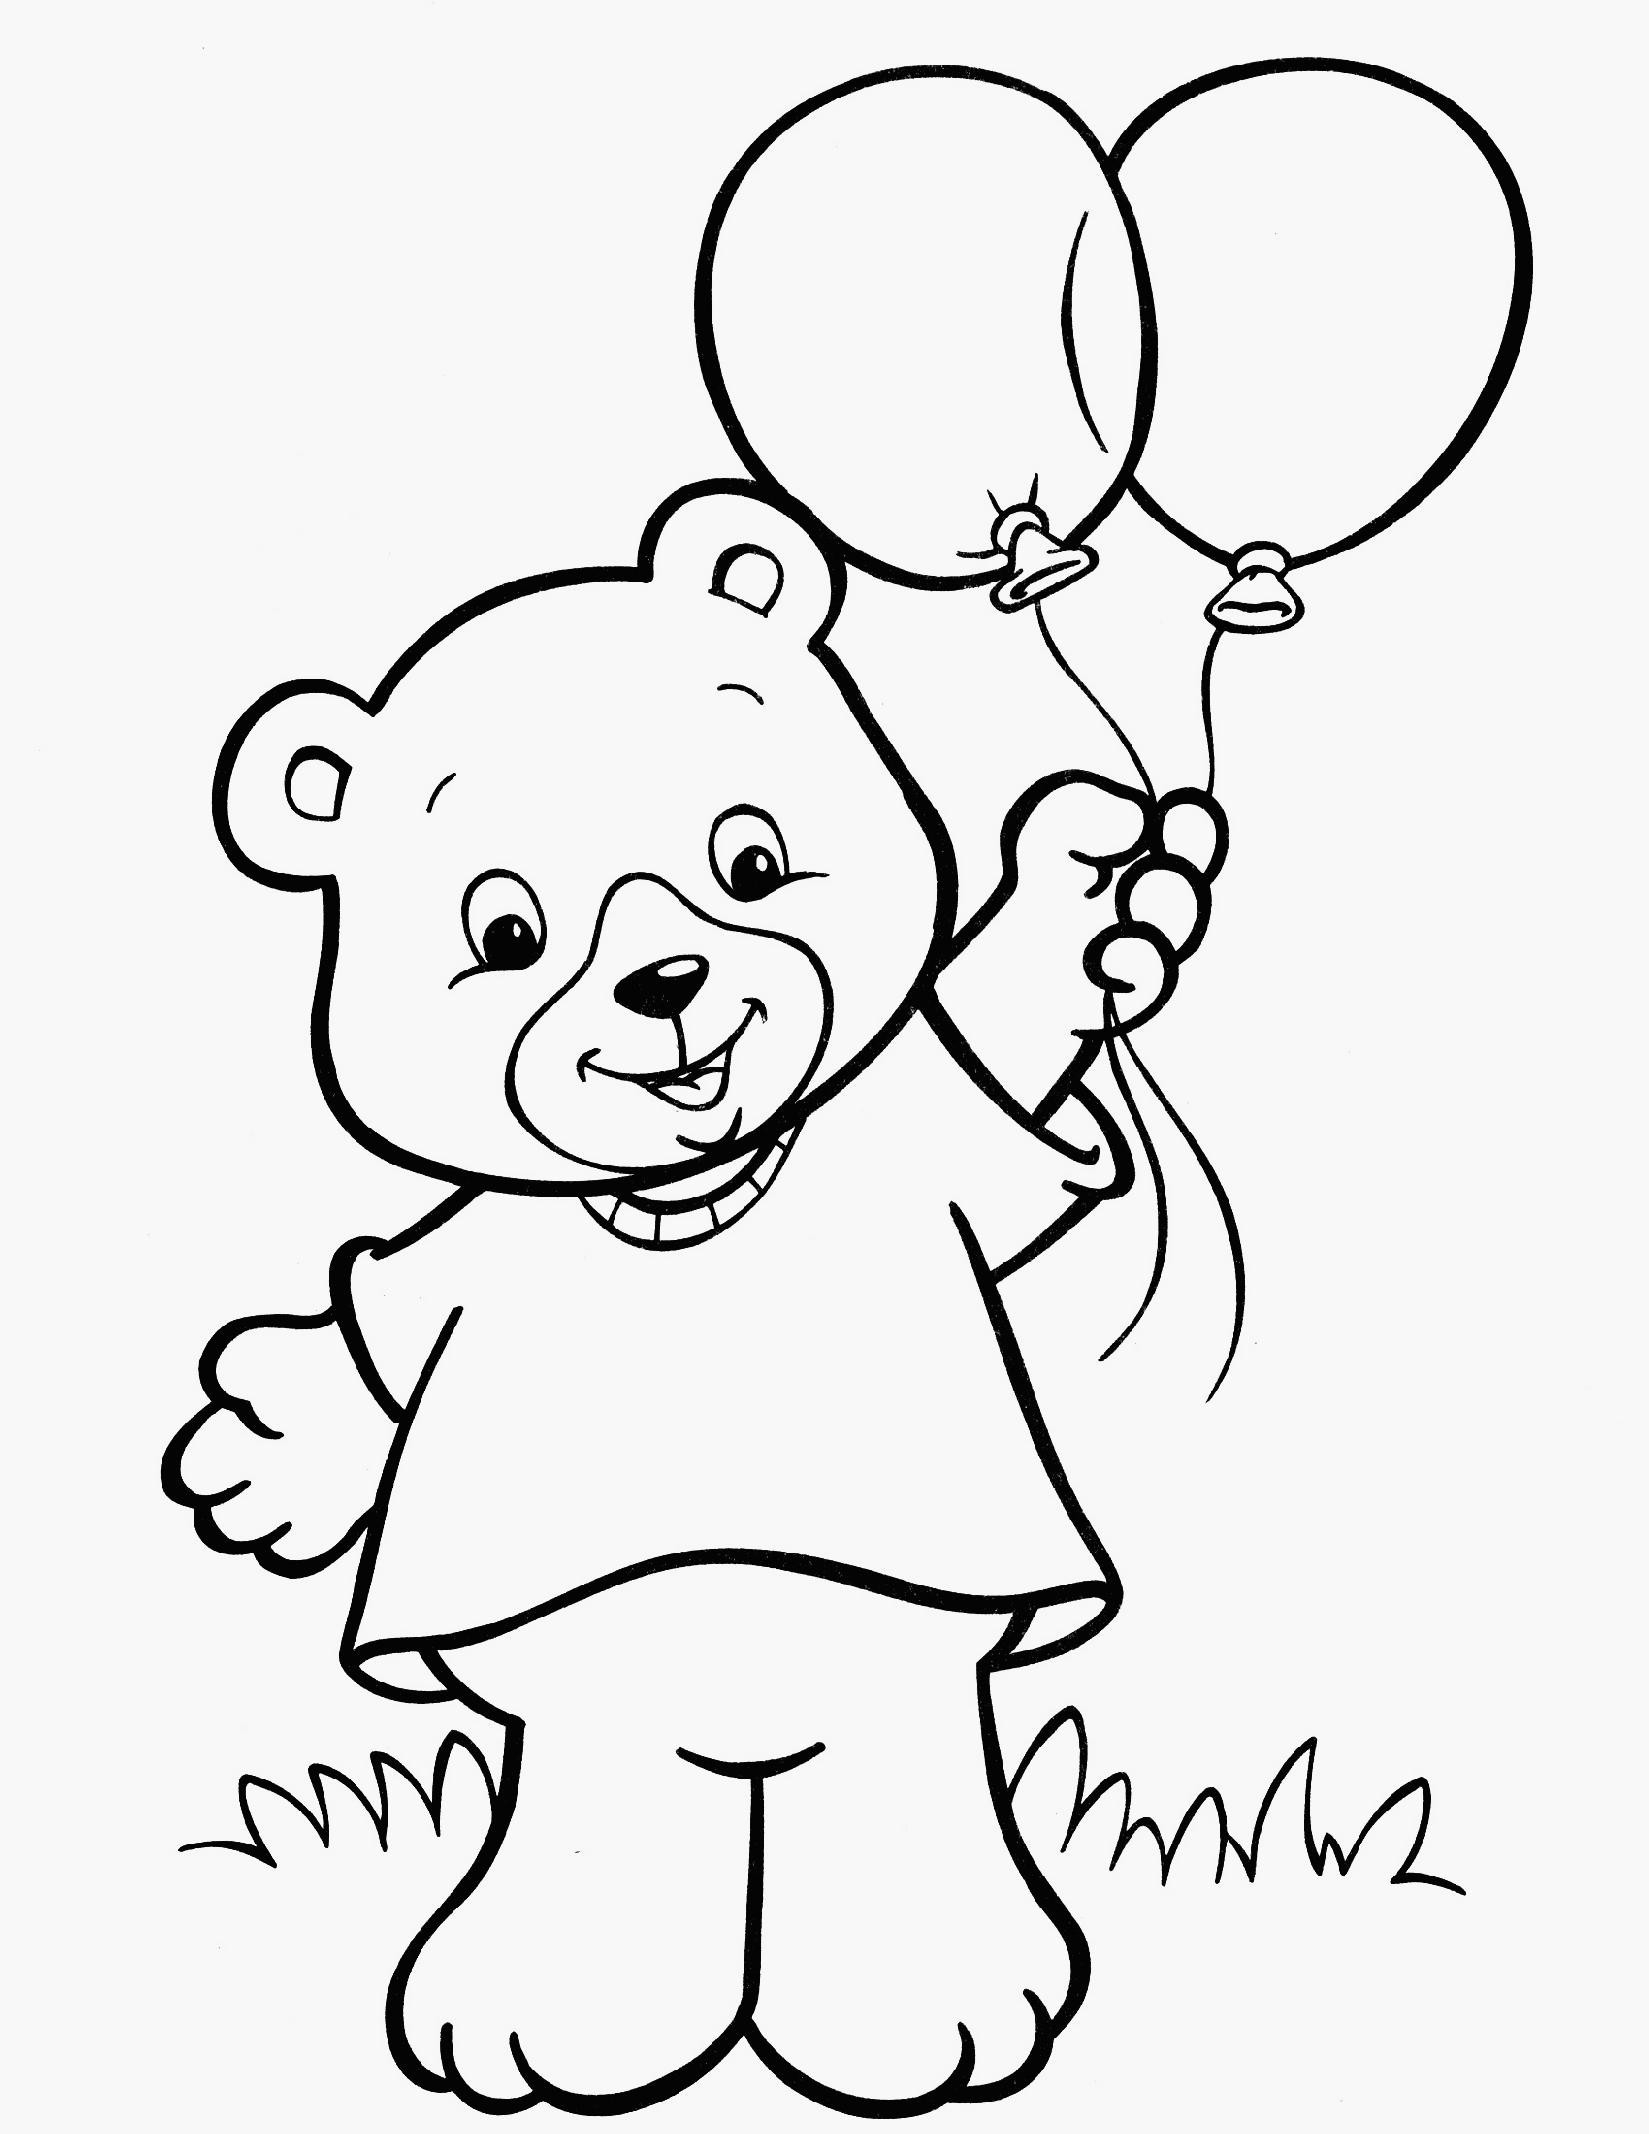 free coloring sheets for 3 year olds coloring worksheets for 2 year olds coloring pages for 2 3 coloring year 3 olds sheets for free